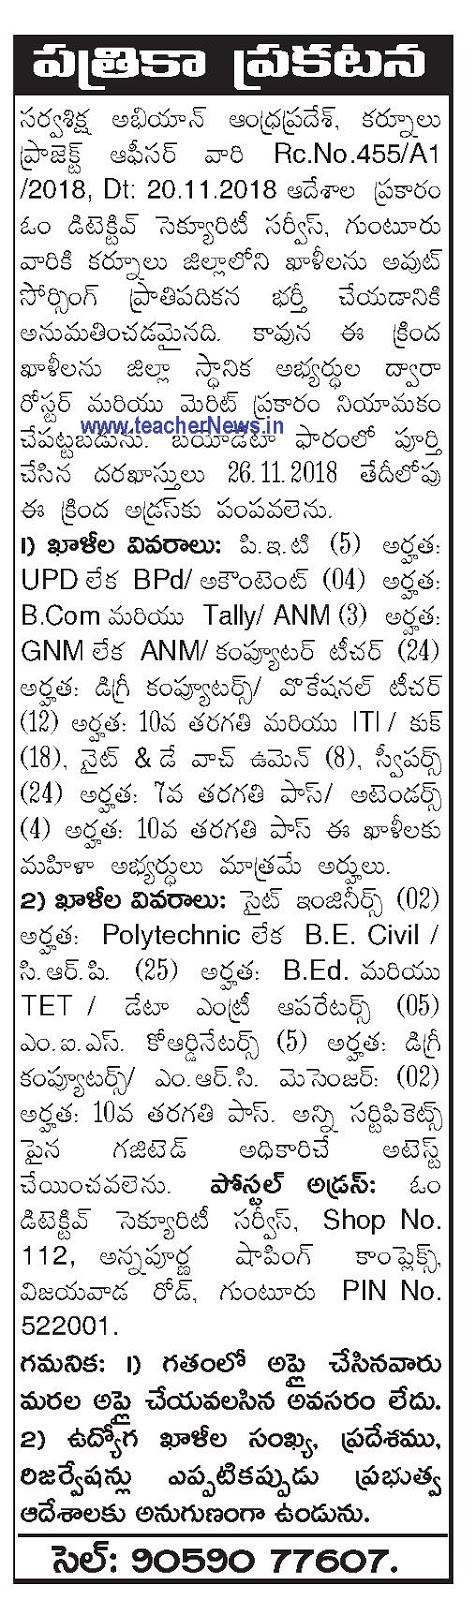 Kurnool SSA Outsourcing Recruitment Notification 2018 - Post wise, Roster Wise Vacancy